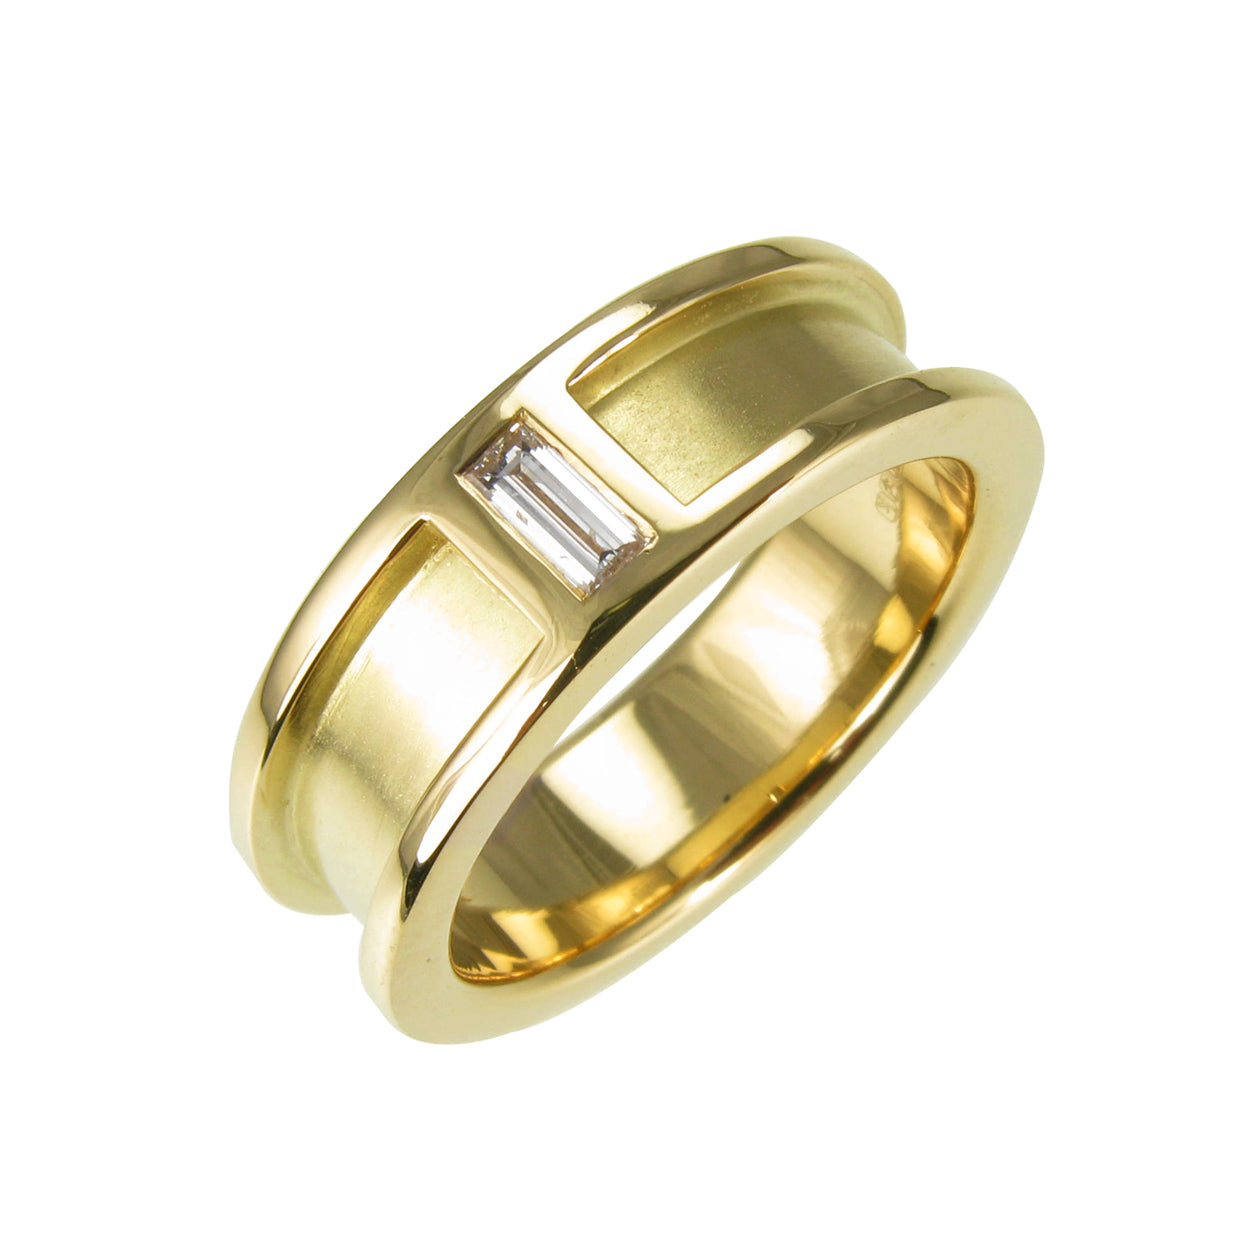 18ct Gold Men's Wedding Band